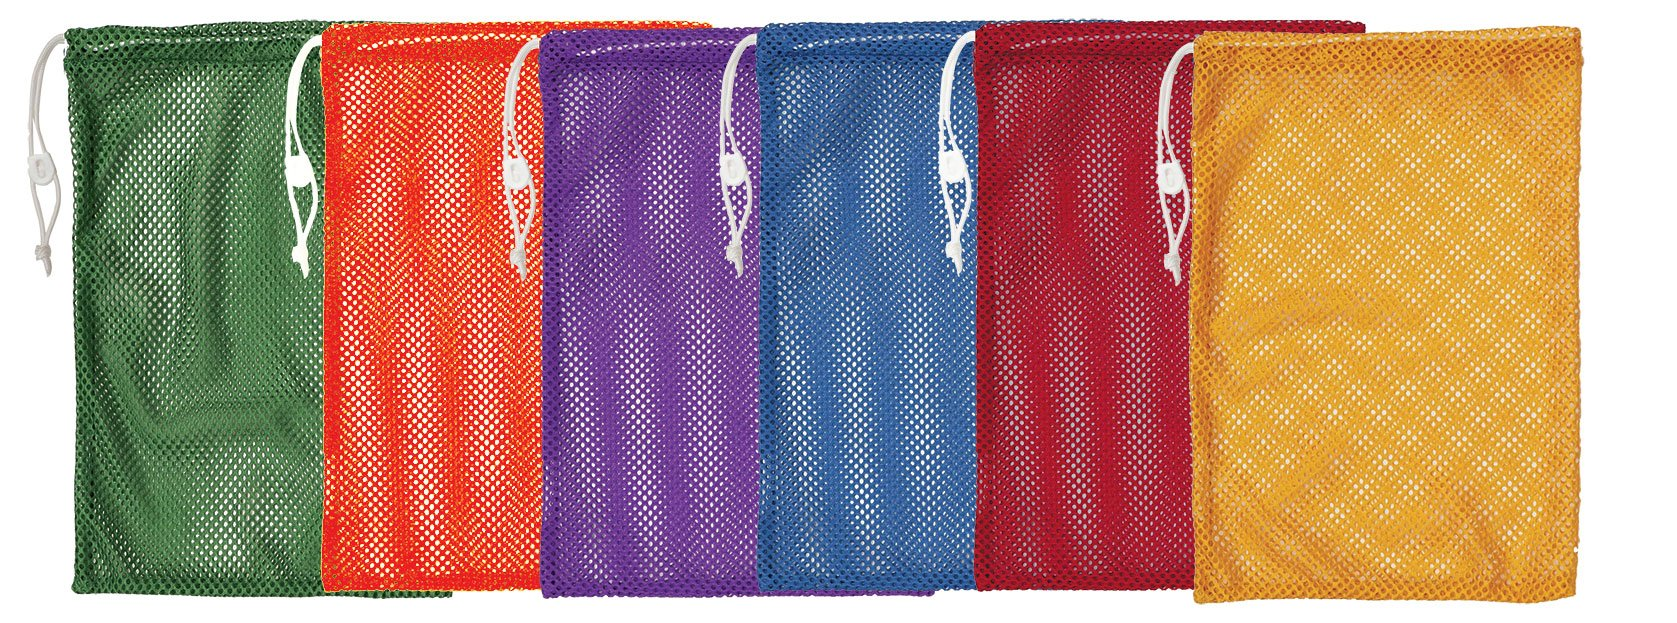 Champion Sports Mesh Equipment Bags, 12'' x 18'', Assorted Colors, Pack of 6